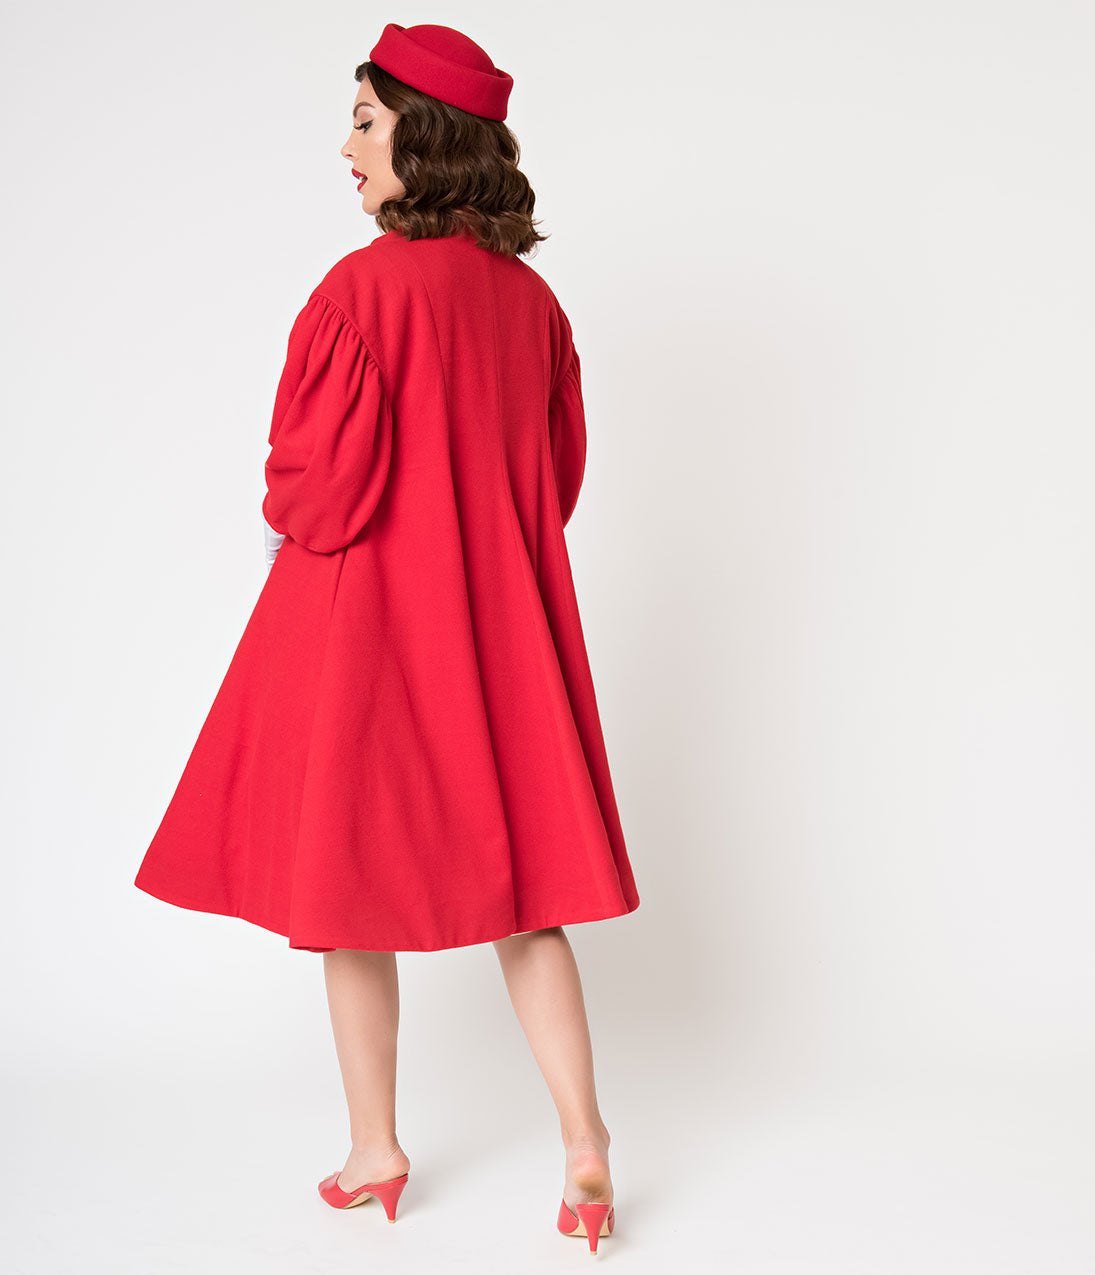 7bce398adc0 Barbie x Unique Vintage 1960s Style Red Flare Swing Coat